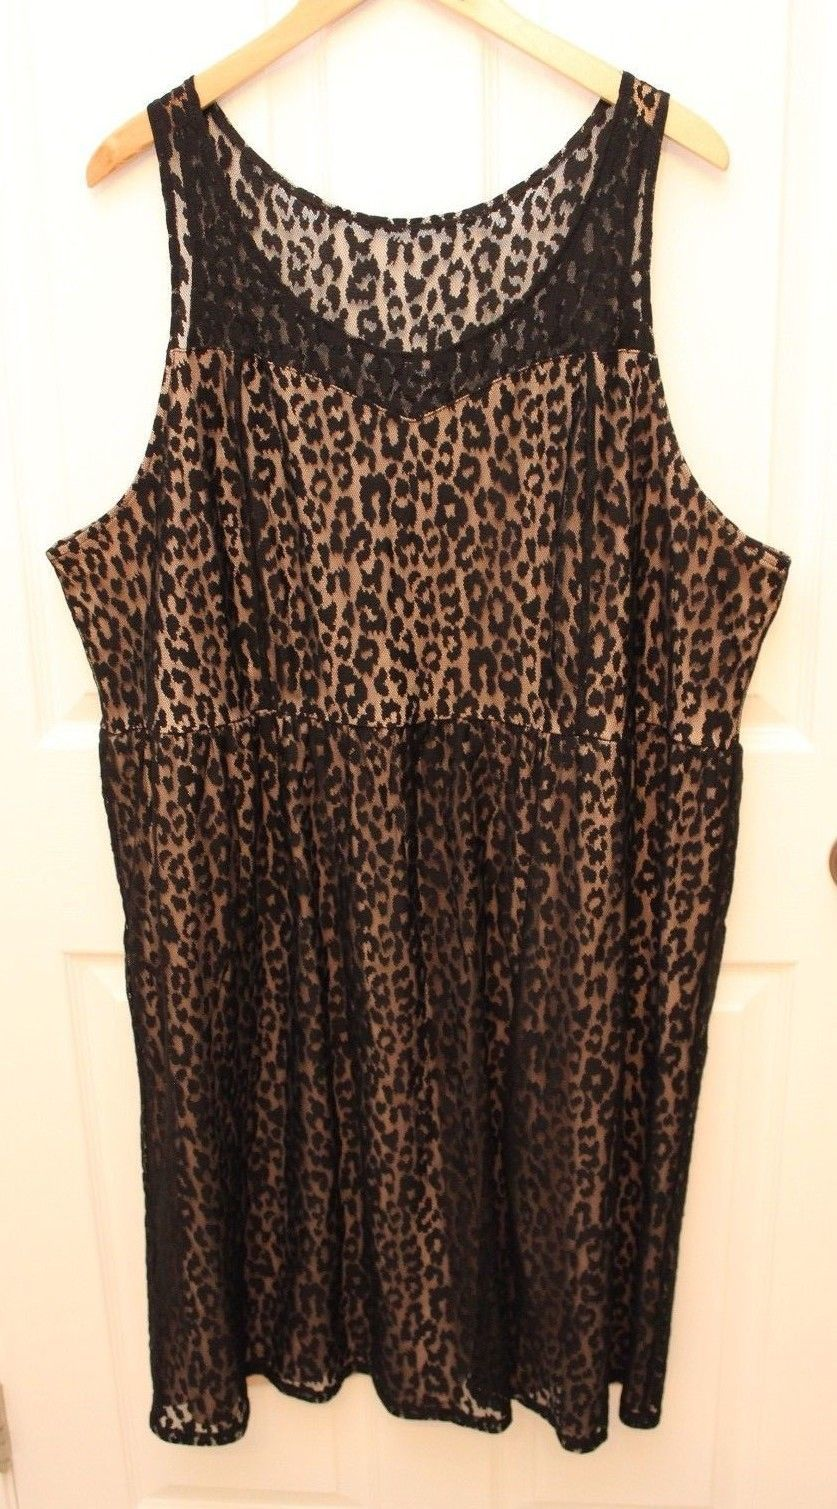 Primary image for Lane Bryant Plus Size 26 Black Animal Print Lace Dress Nude Lined Sleeveless